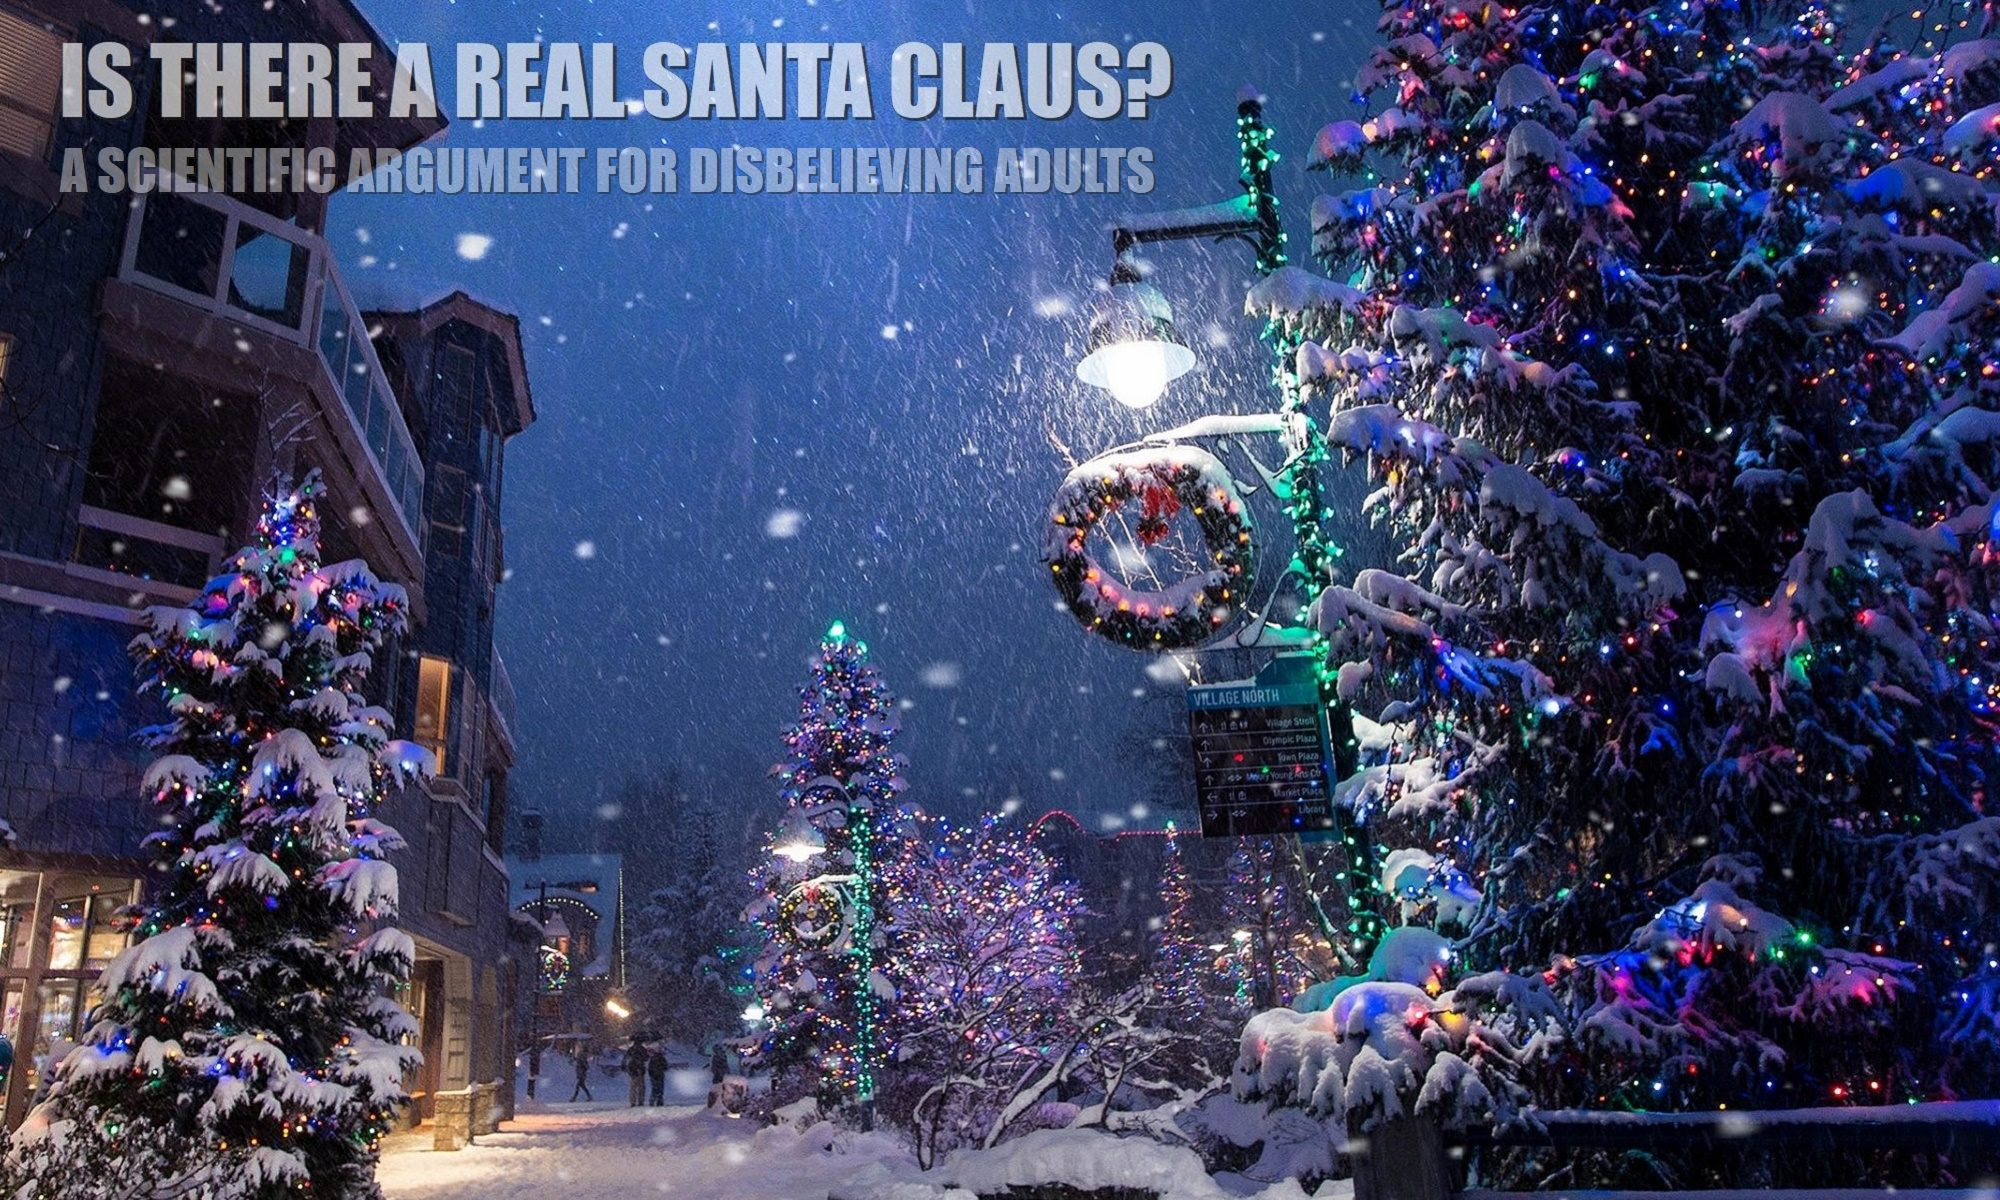 is-there-a-santa-claus-a-scientific-philosophical-rational-argument-believing-creates-reality-1-2000